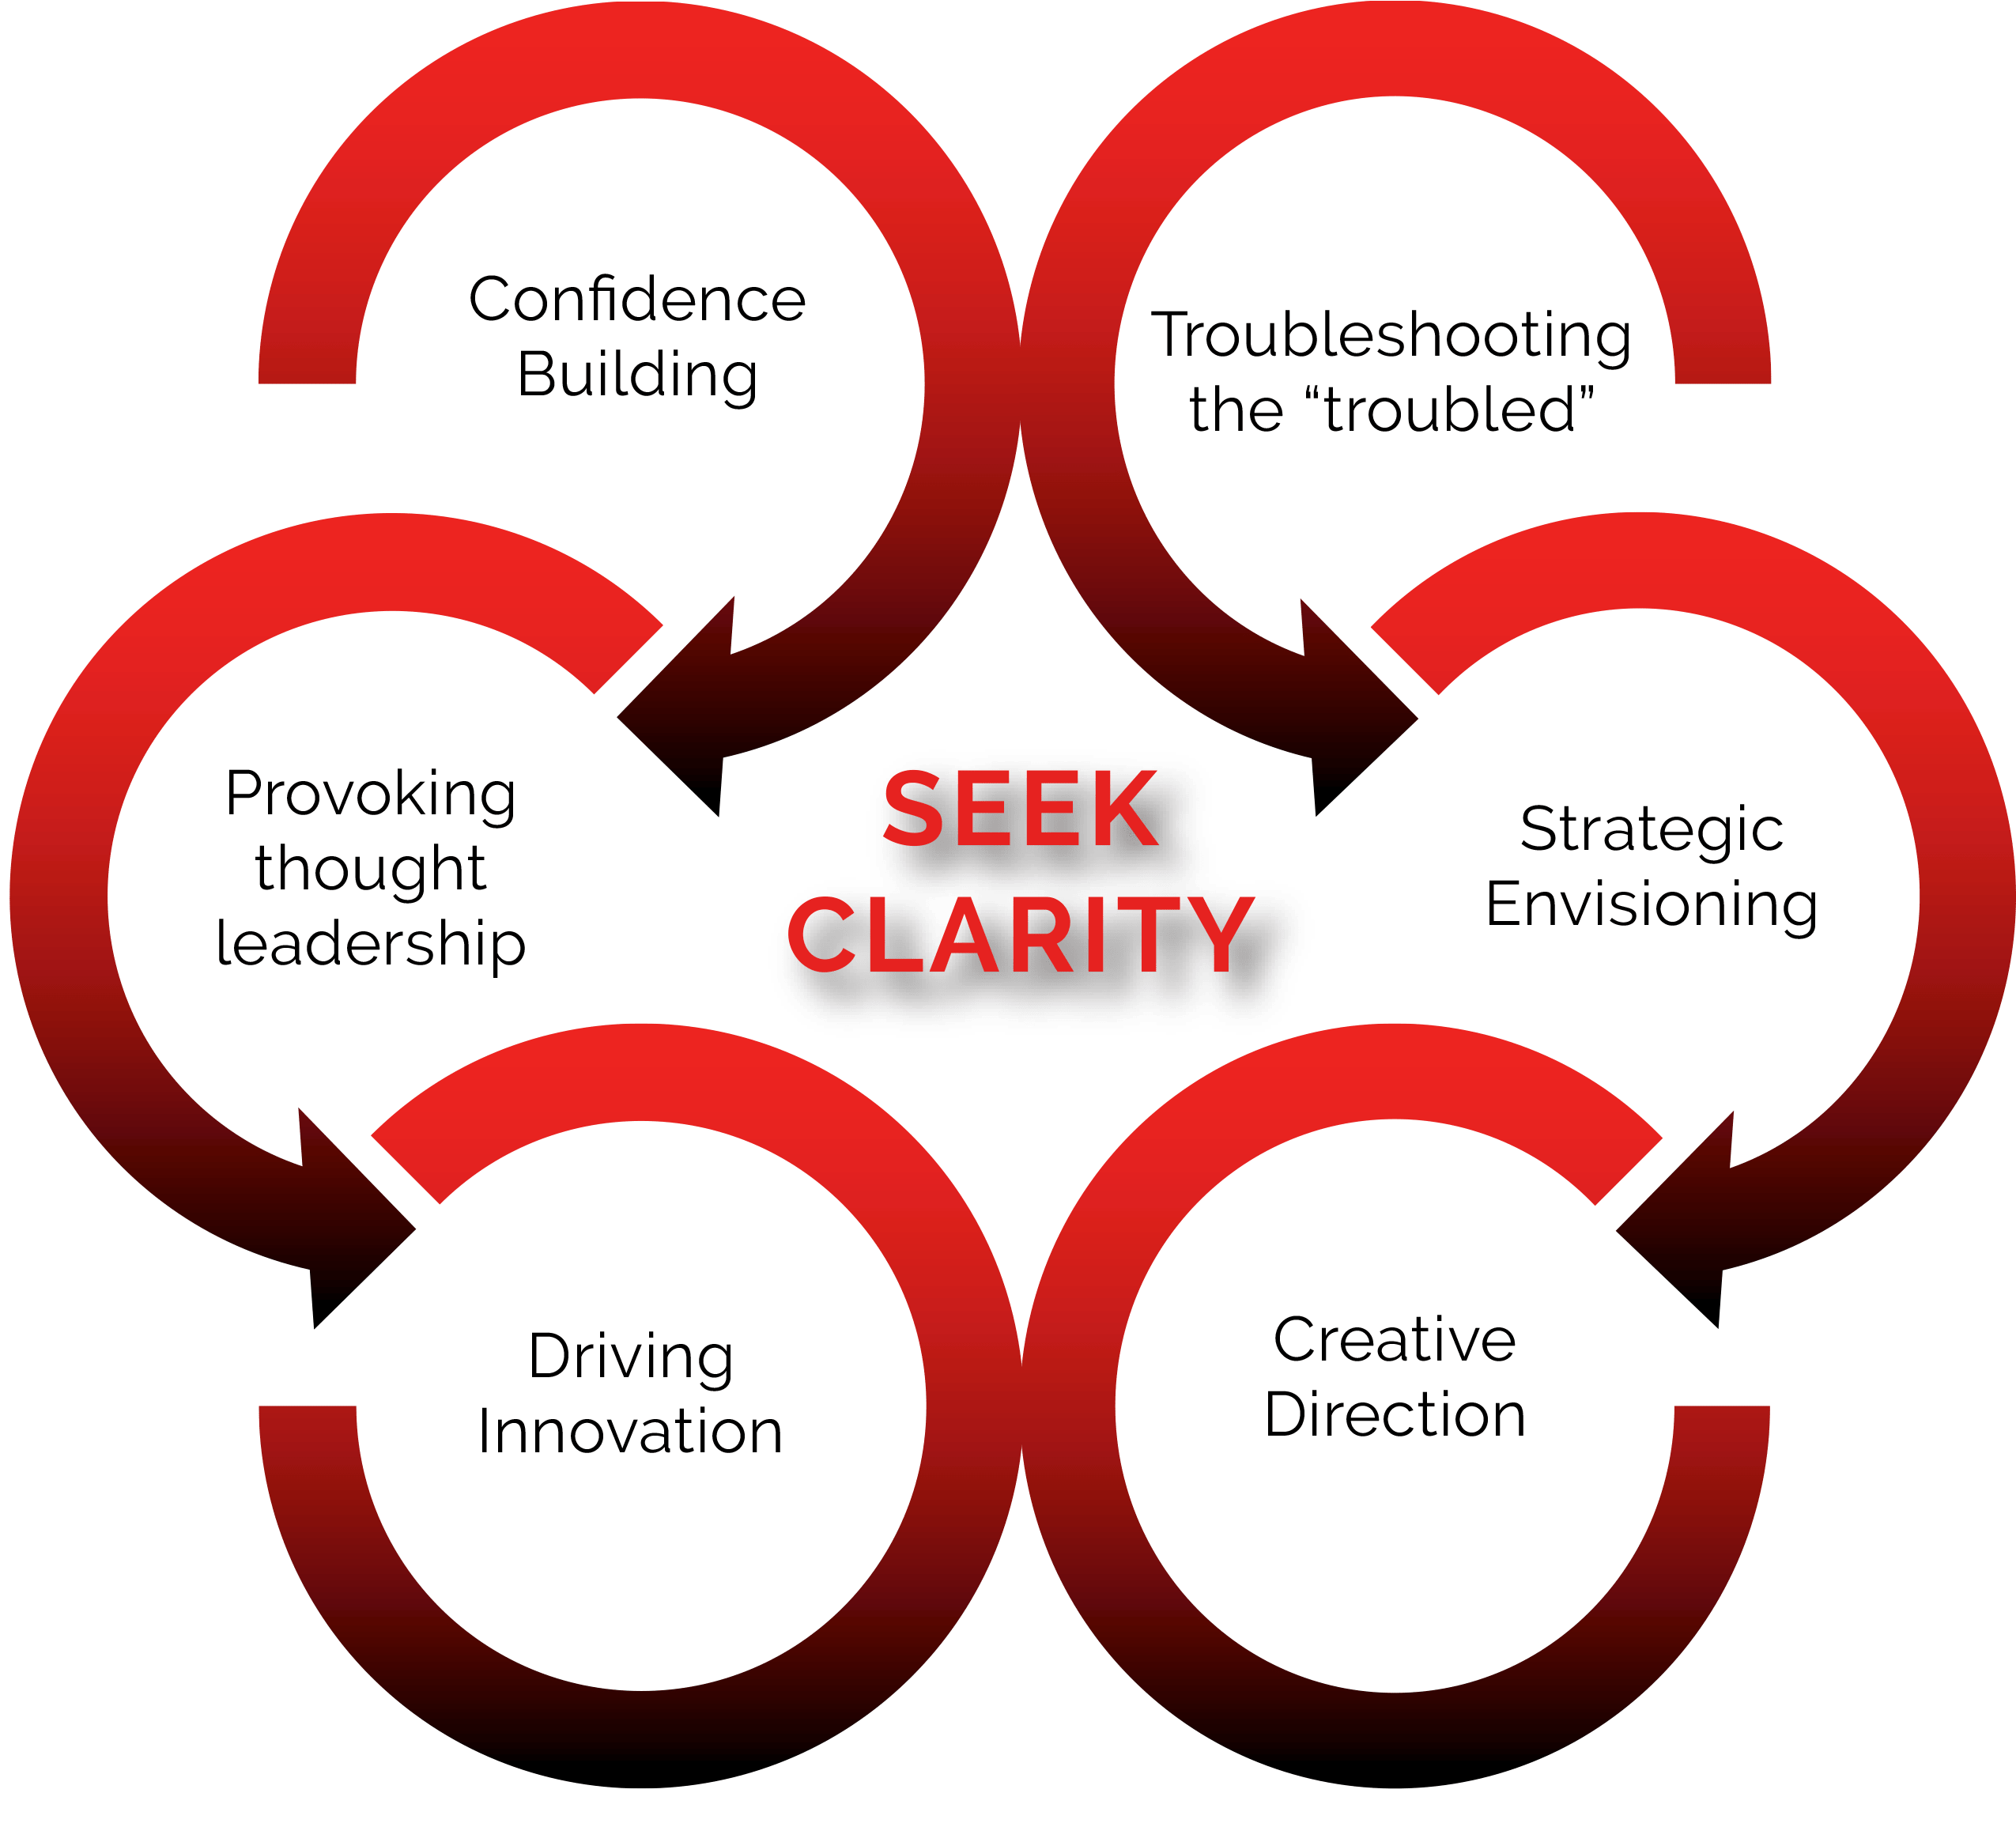 Seek Clarity Graphic